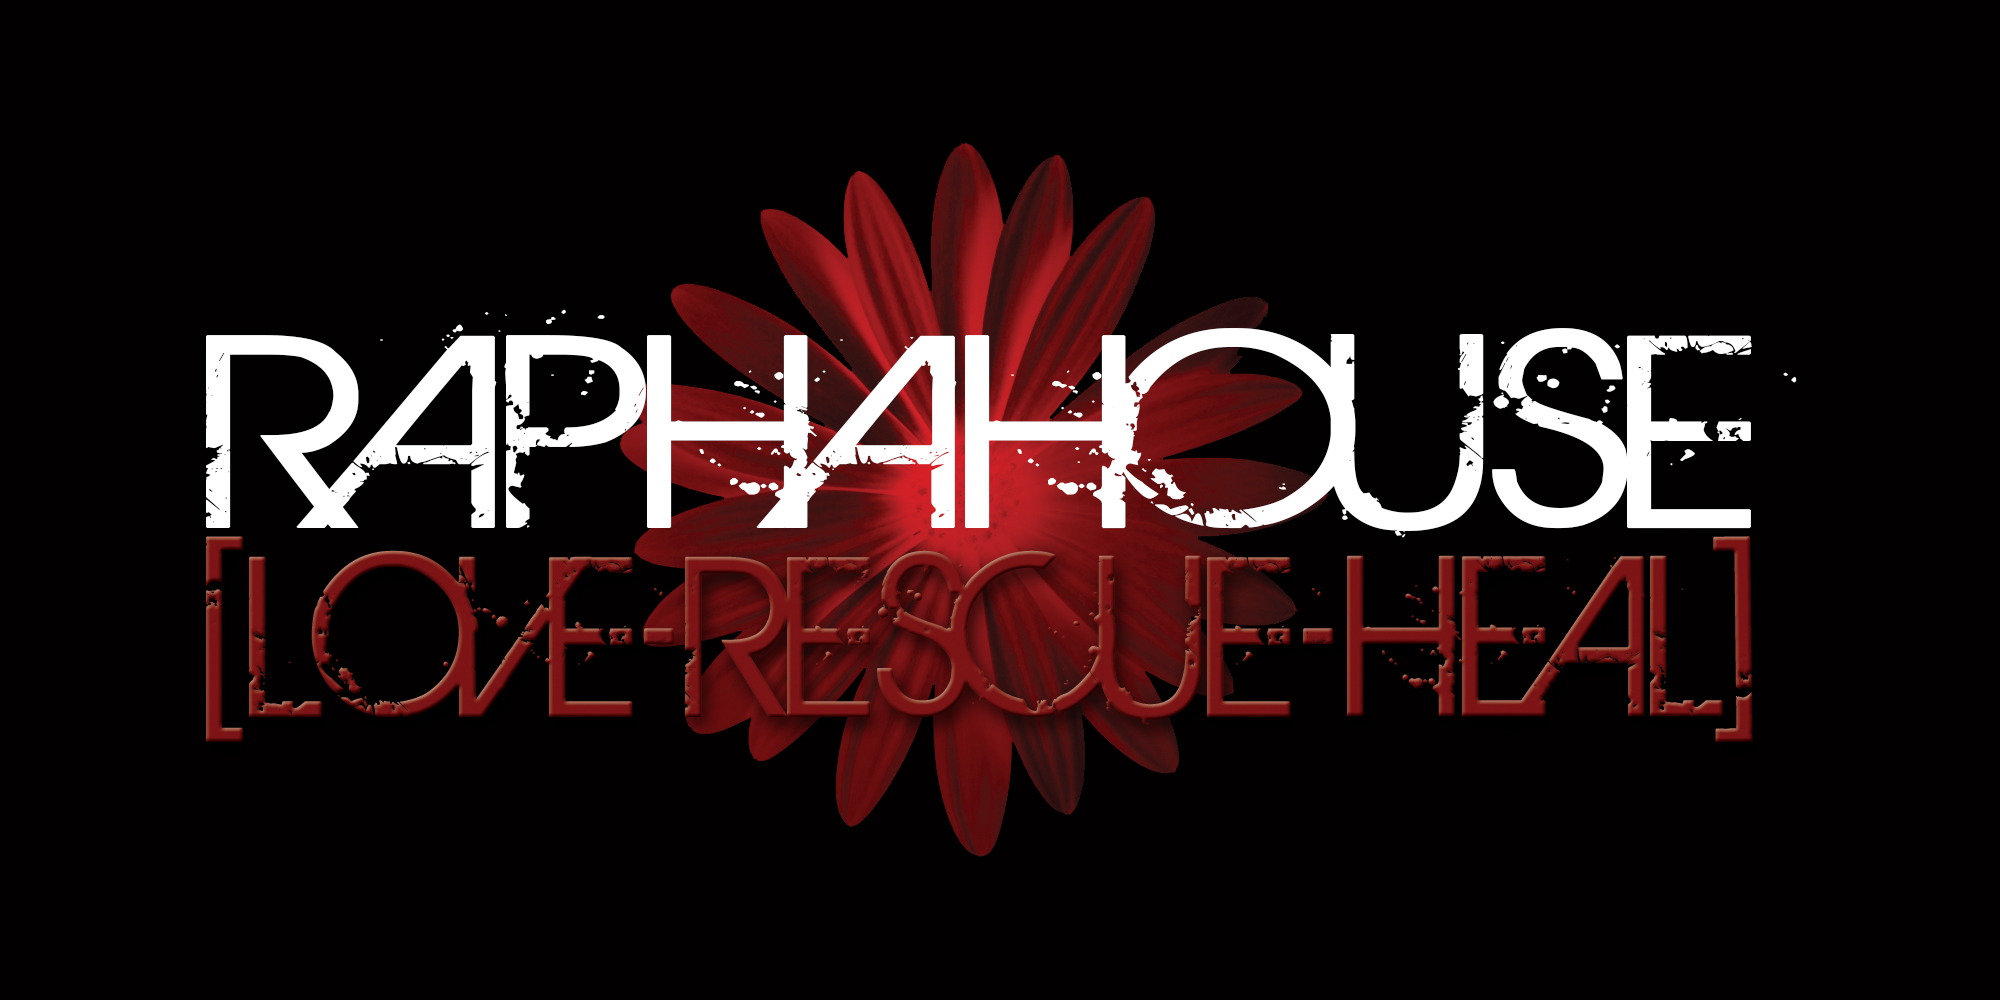 Rapha House International [Love Rescue Heal]